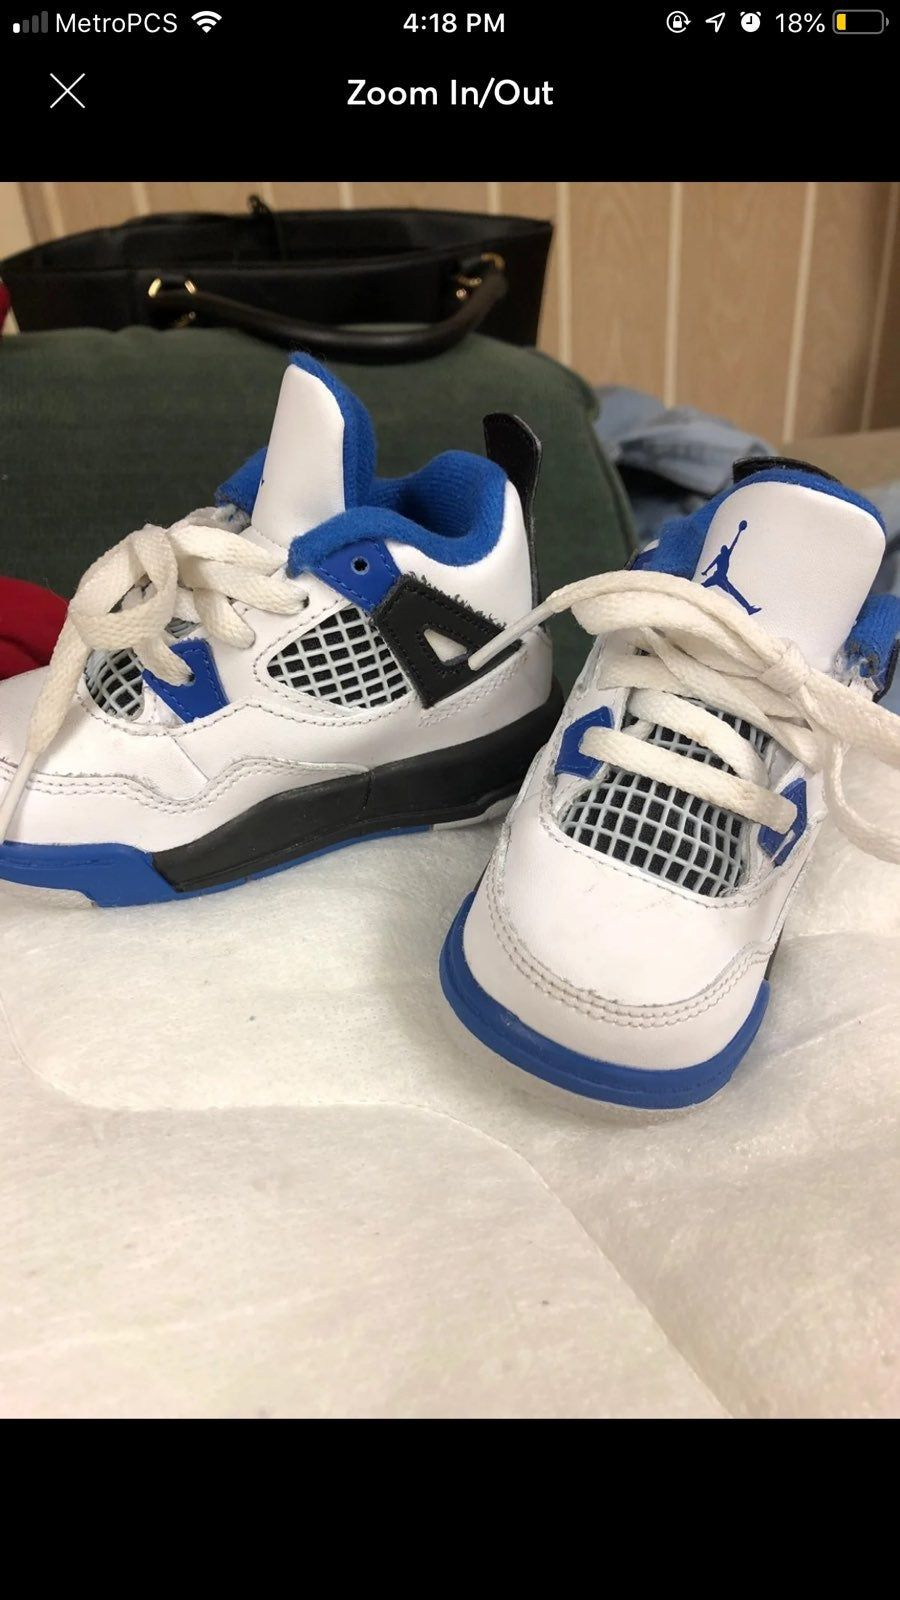 SHOES WILL BE CLEANED BEFORE SHIPPING Air jordan shoes